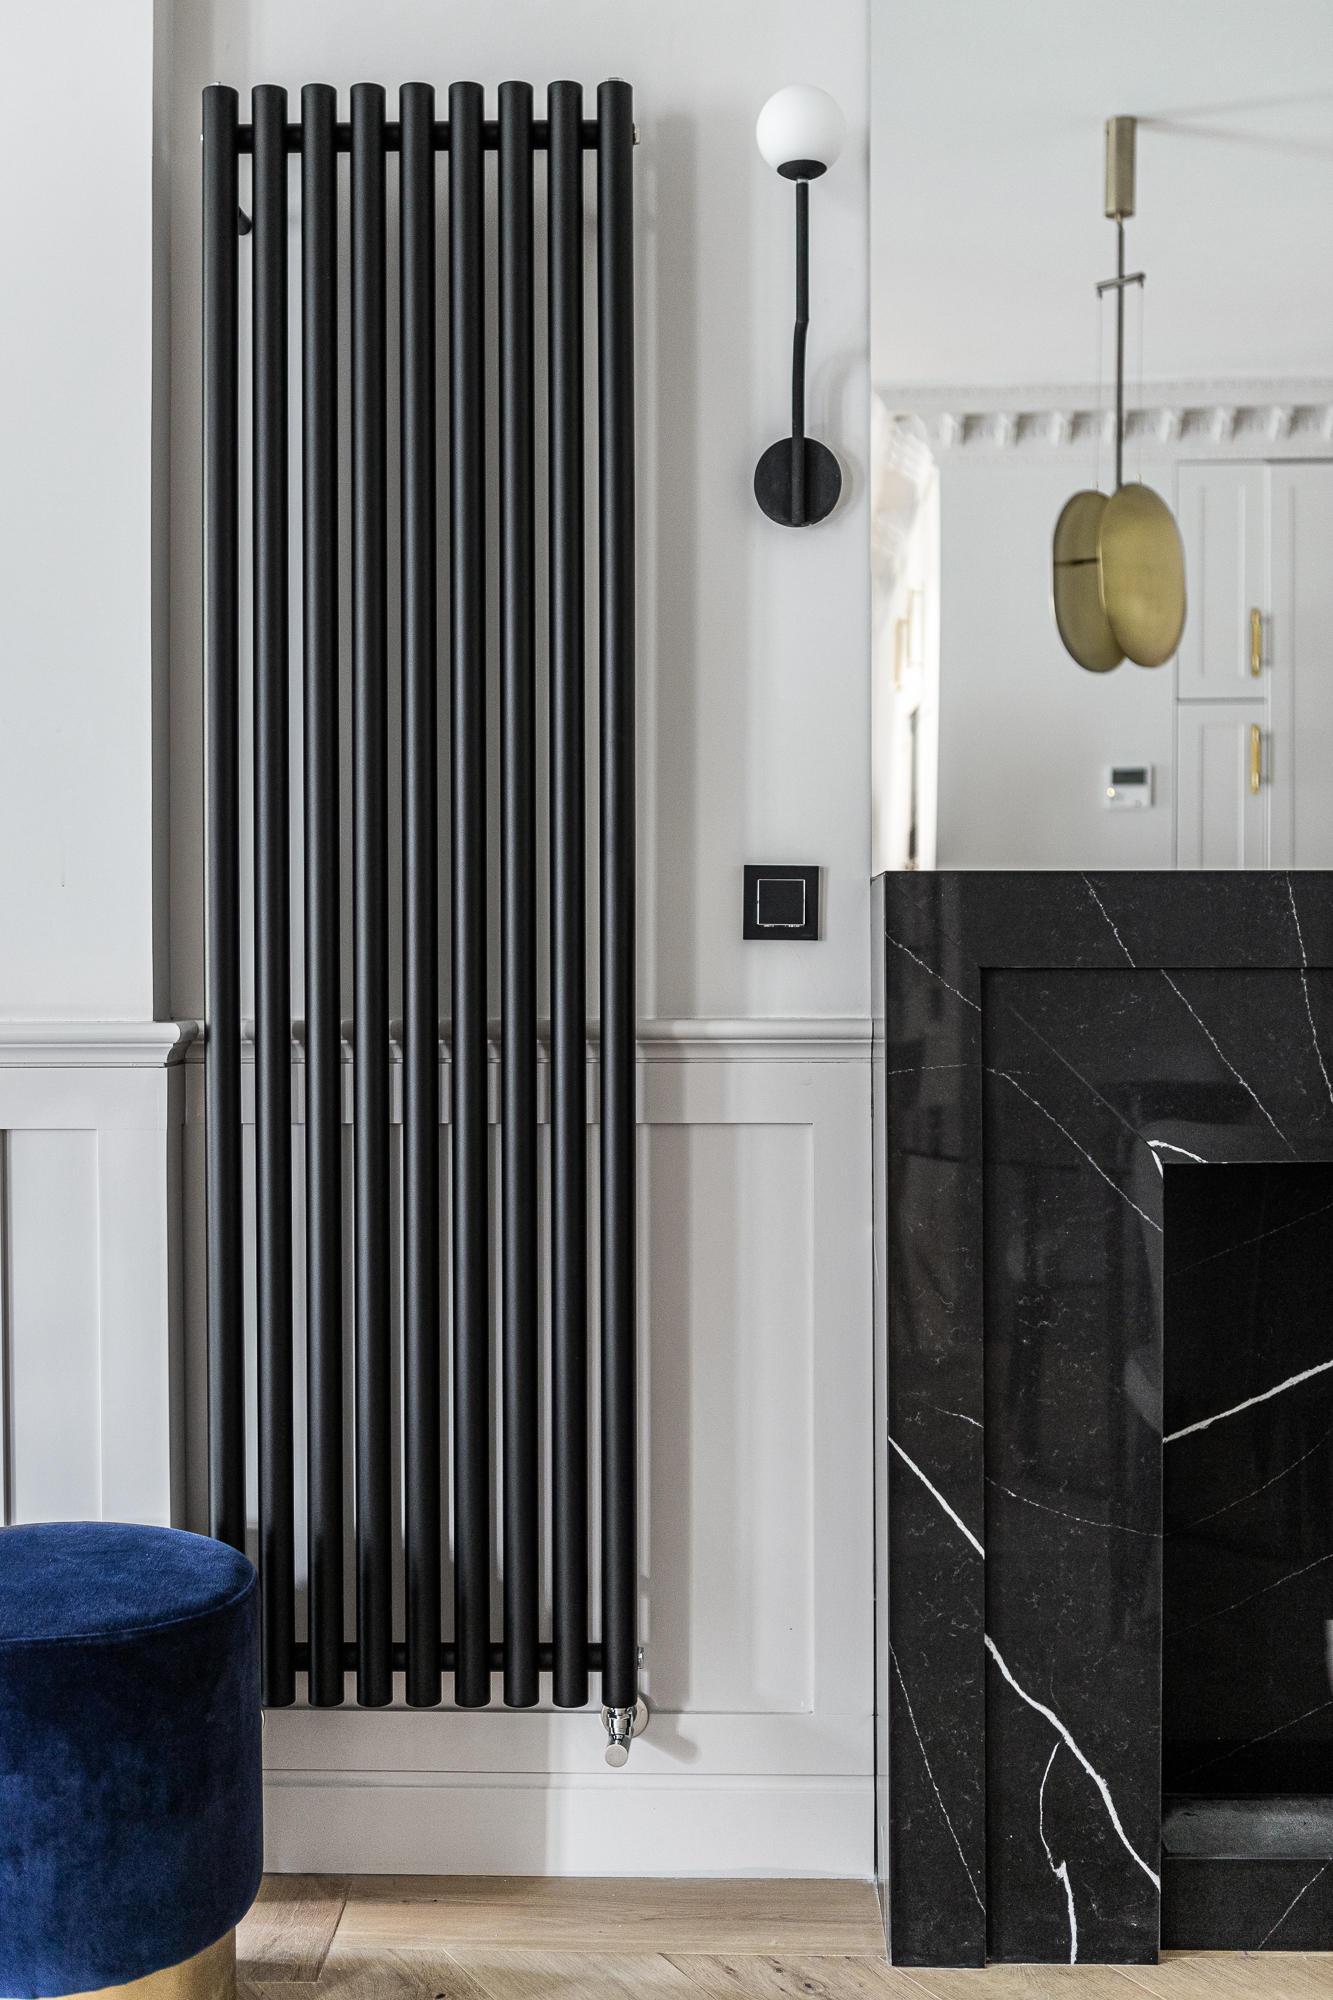 Nordic Standard interior design radiators